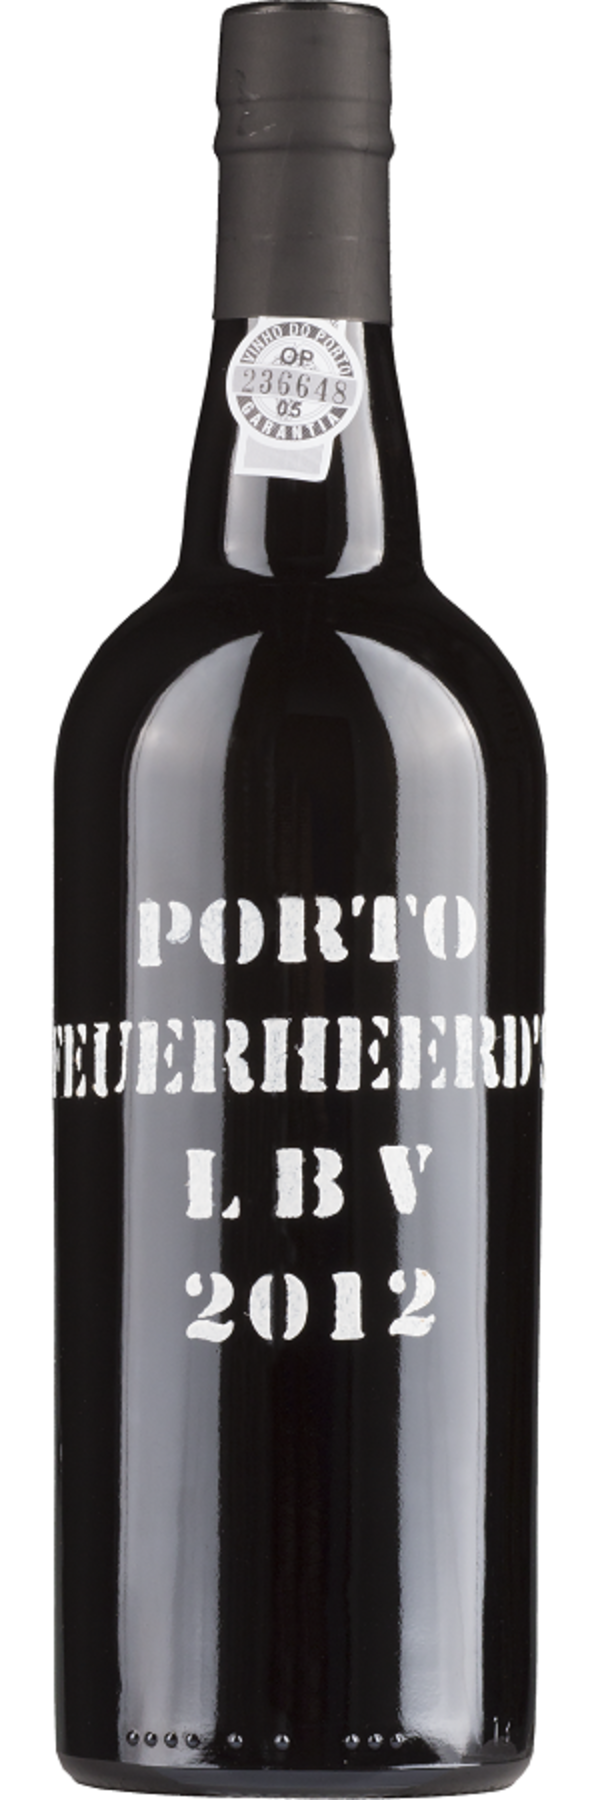 Feuerheerds LBV Port